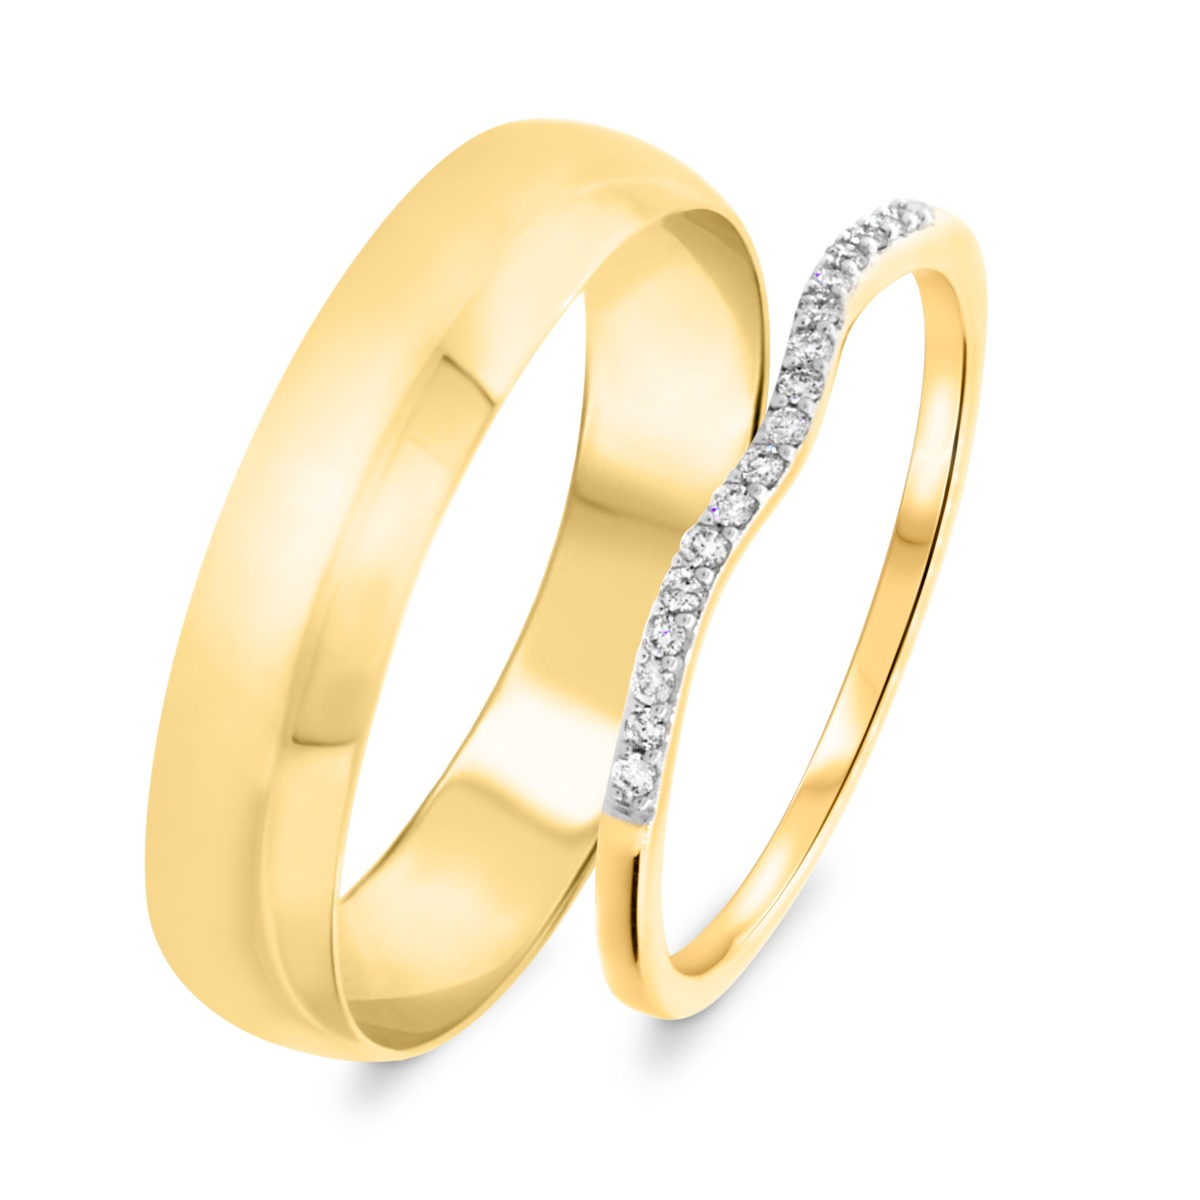 1/10 Carat T.W. Round Cut Diamond His and Hers Wedding Band Set 10K Yellow Gold